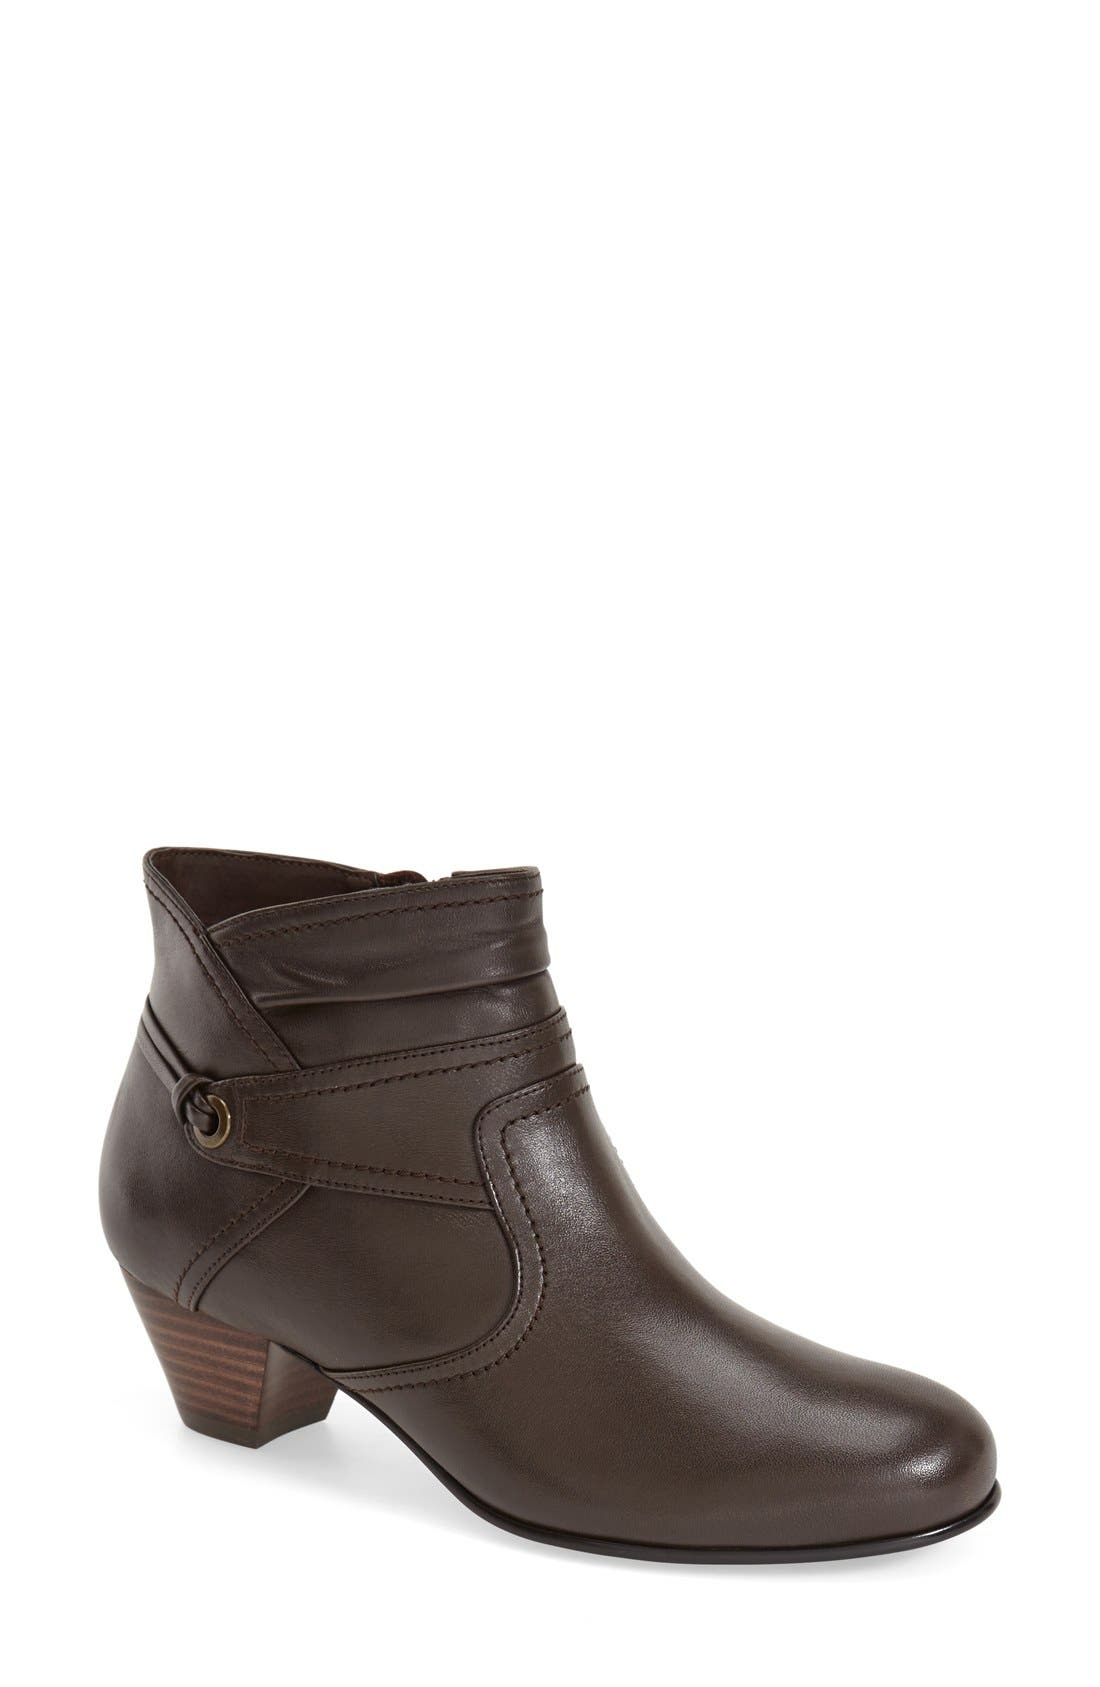 David Tate 'Campus' Boot (Women)